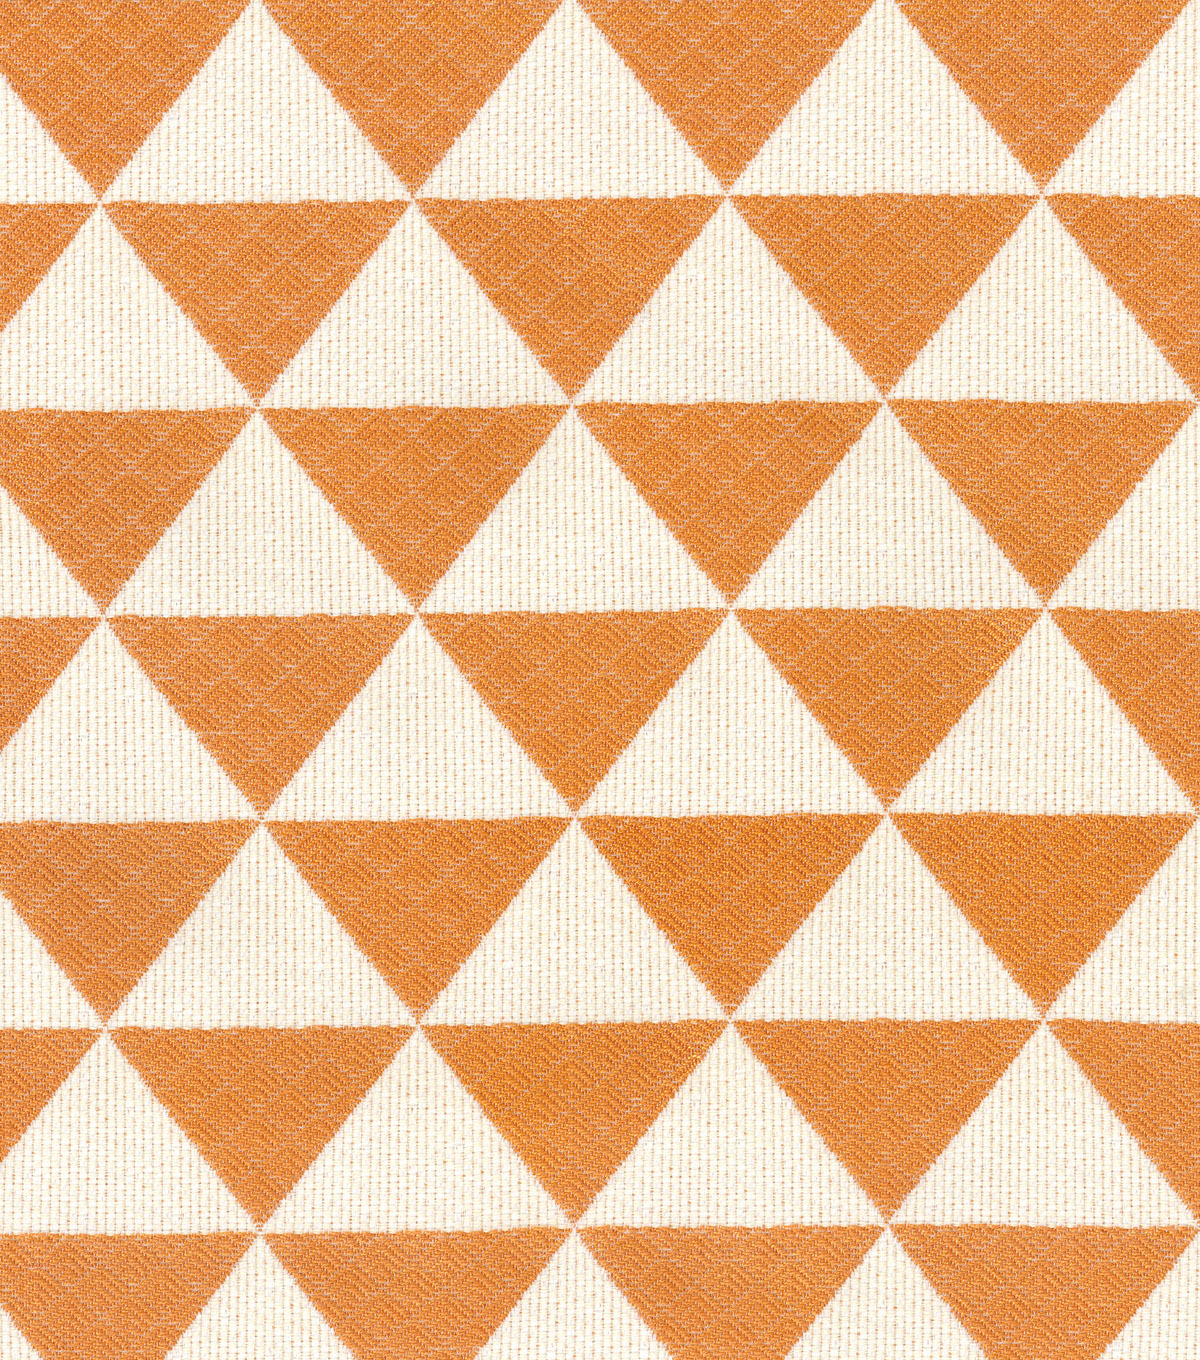 HGTV Home Upholstery Fabric-Tribeca/Clementine